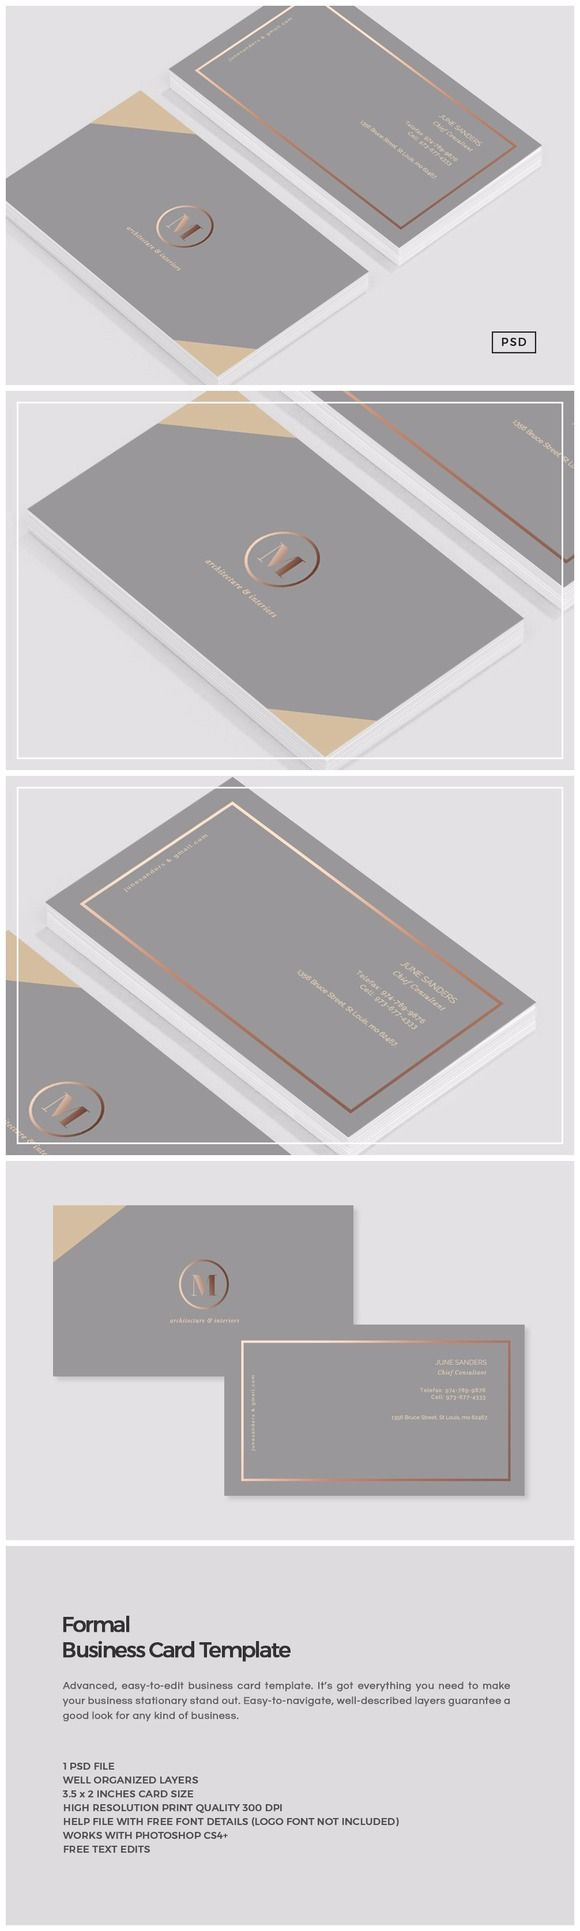 1100 best business cards images on pinterest lipsense business formal business card template by the design label on creativemarket reheart Images